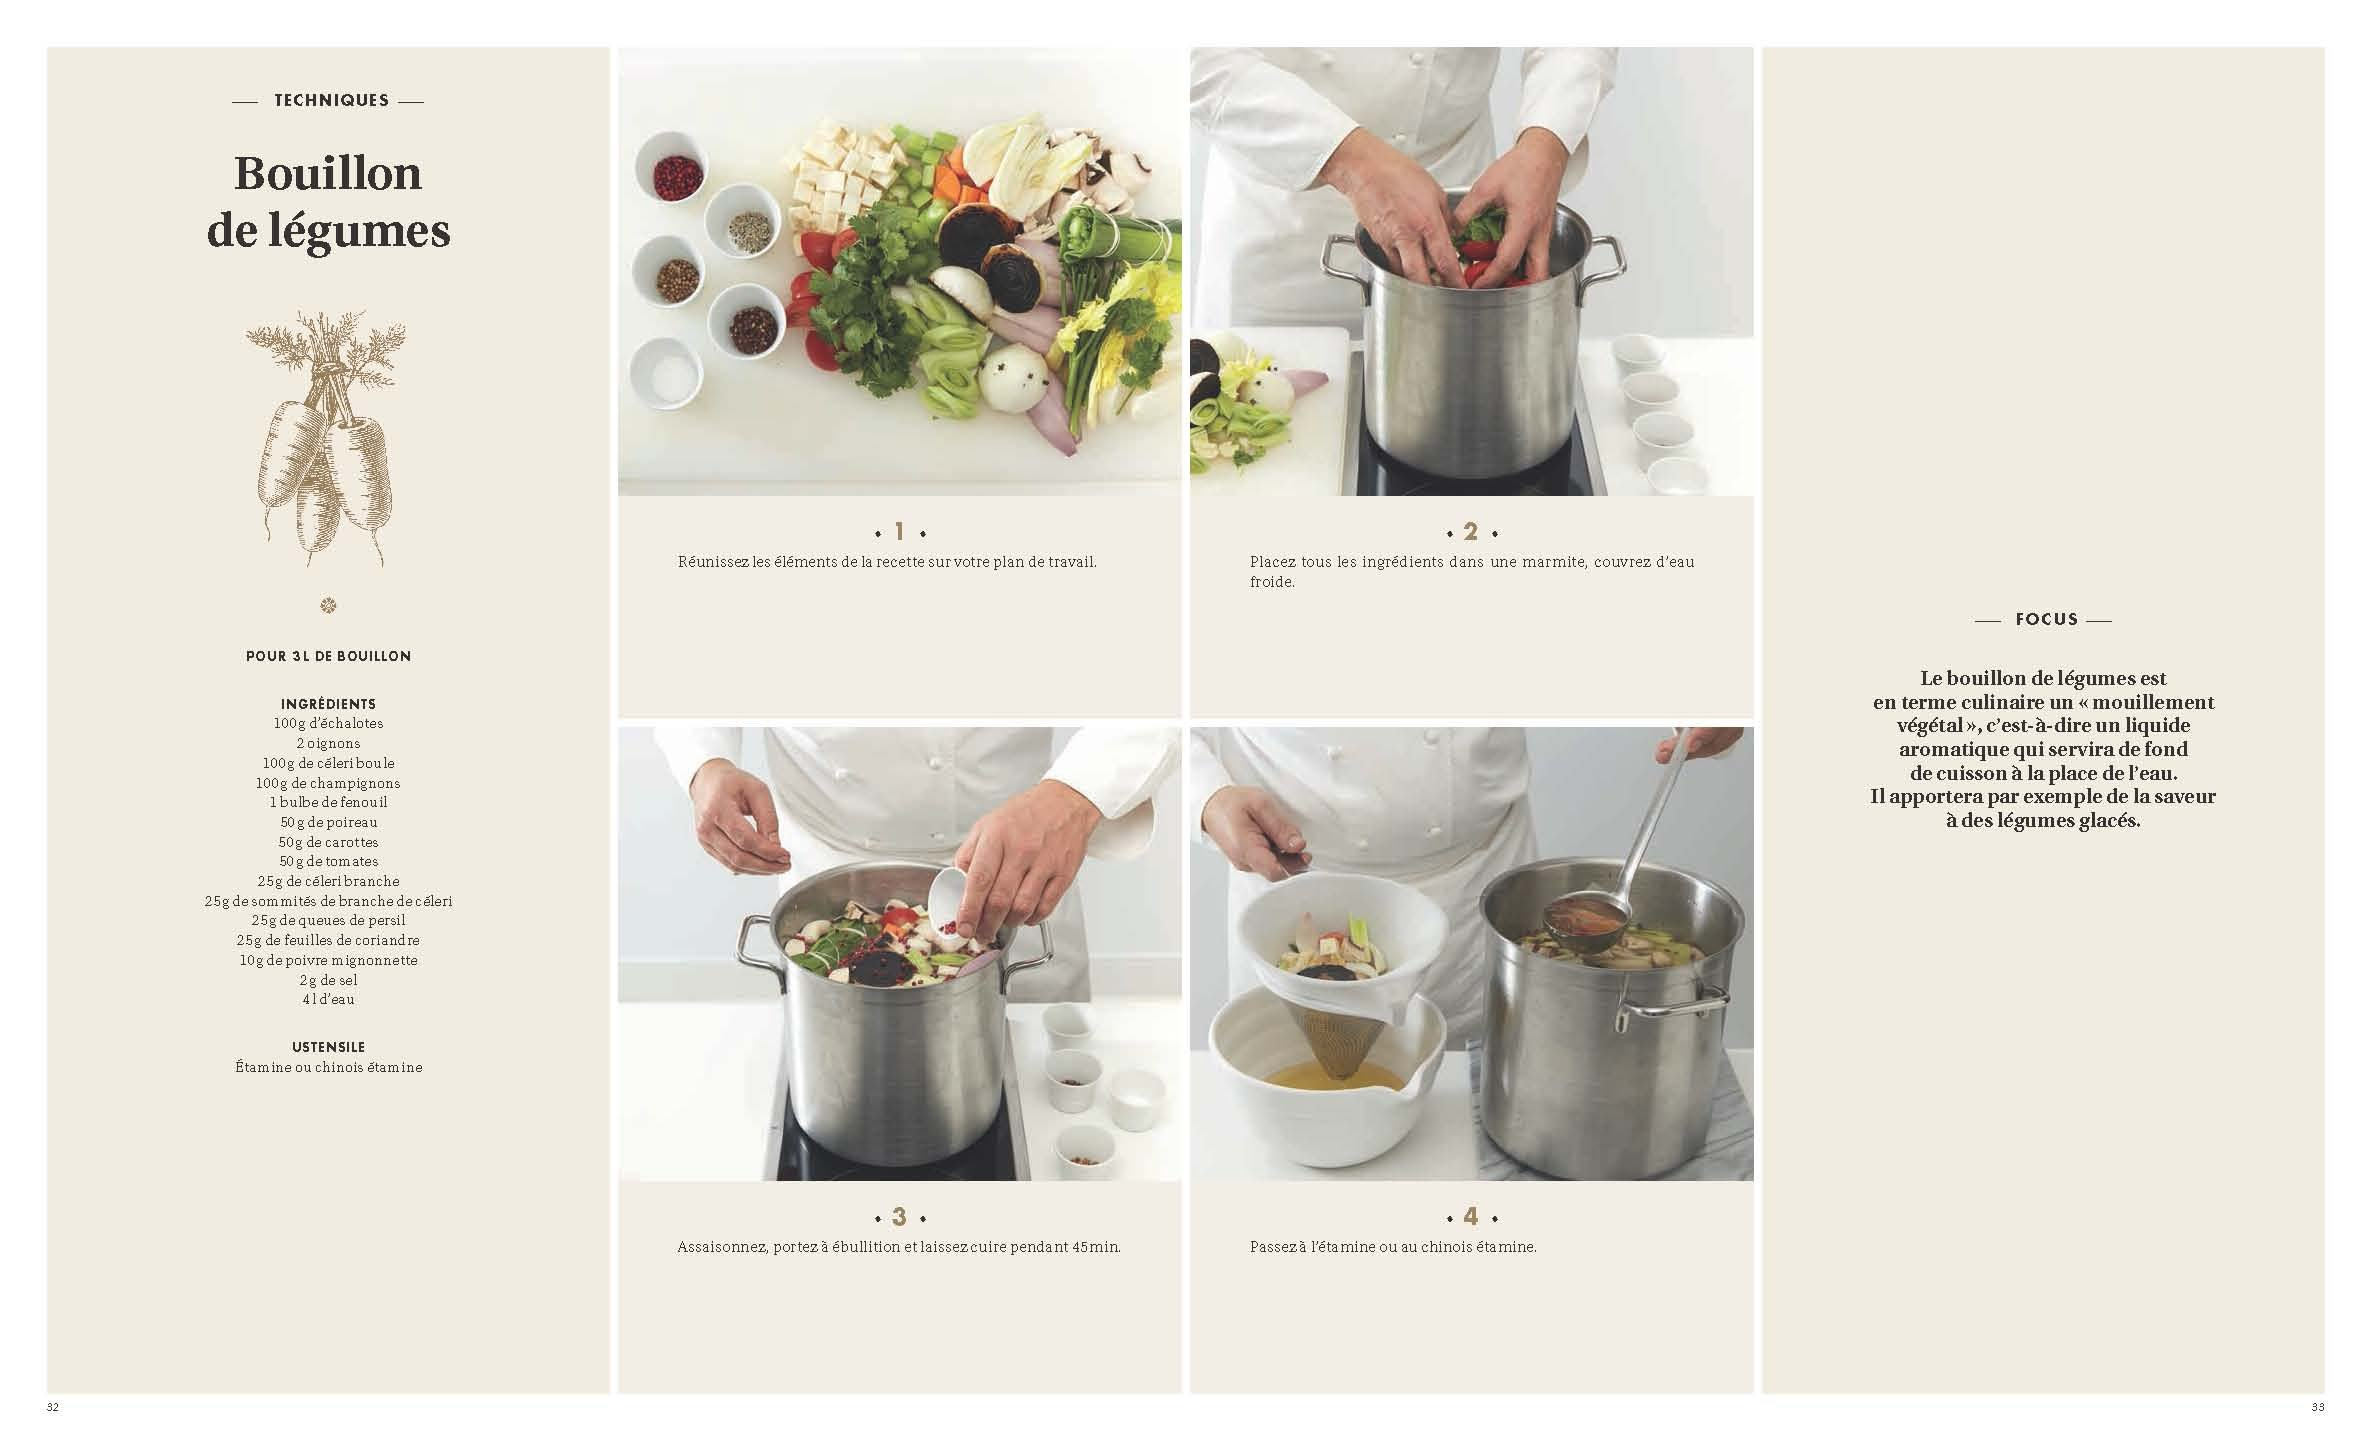 Another cours cuisine grand chef paris image files - Cours de cuisine grand chef ...